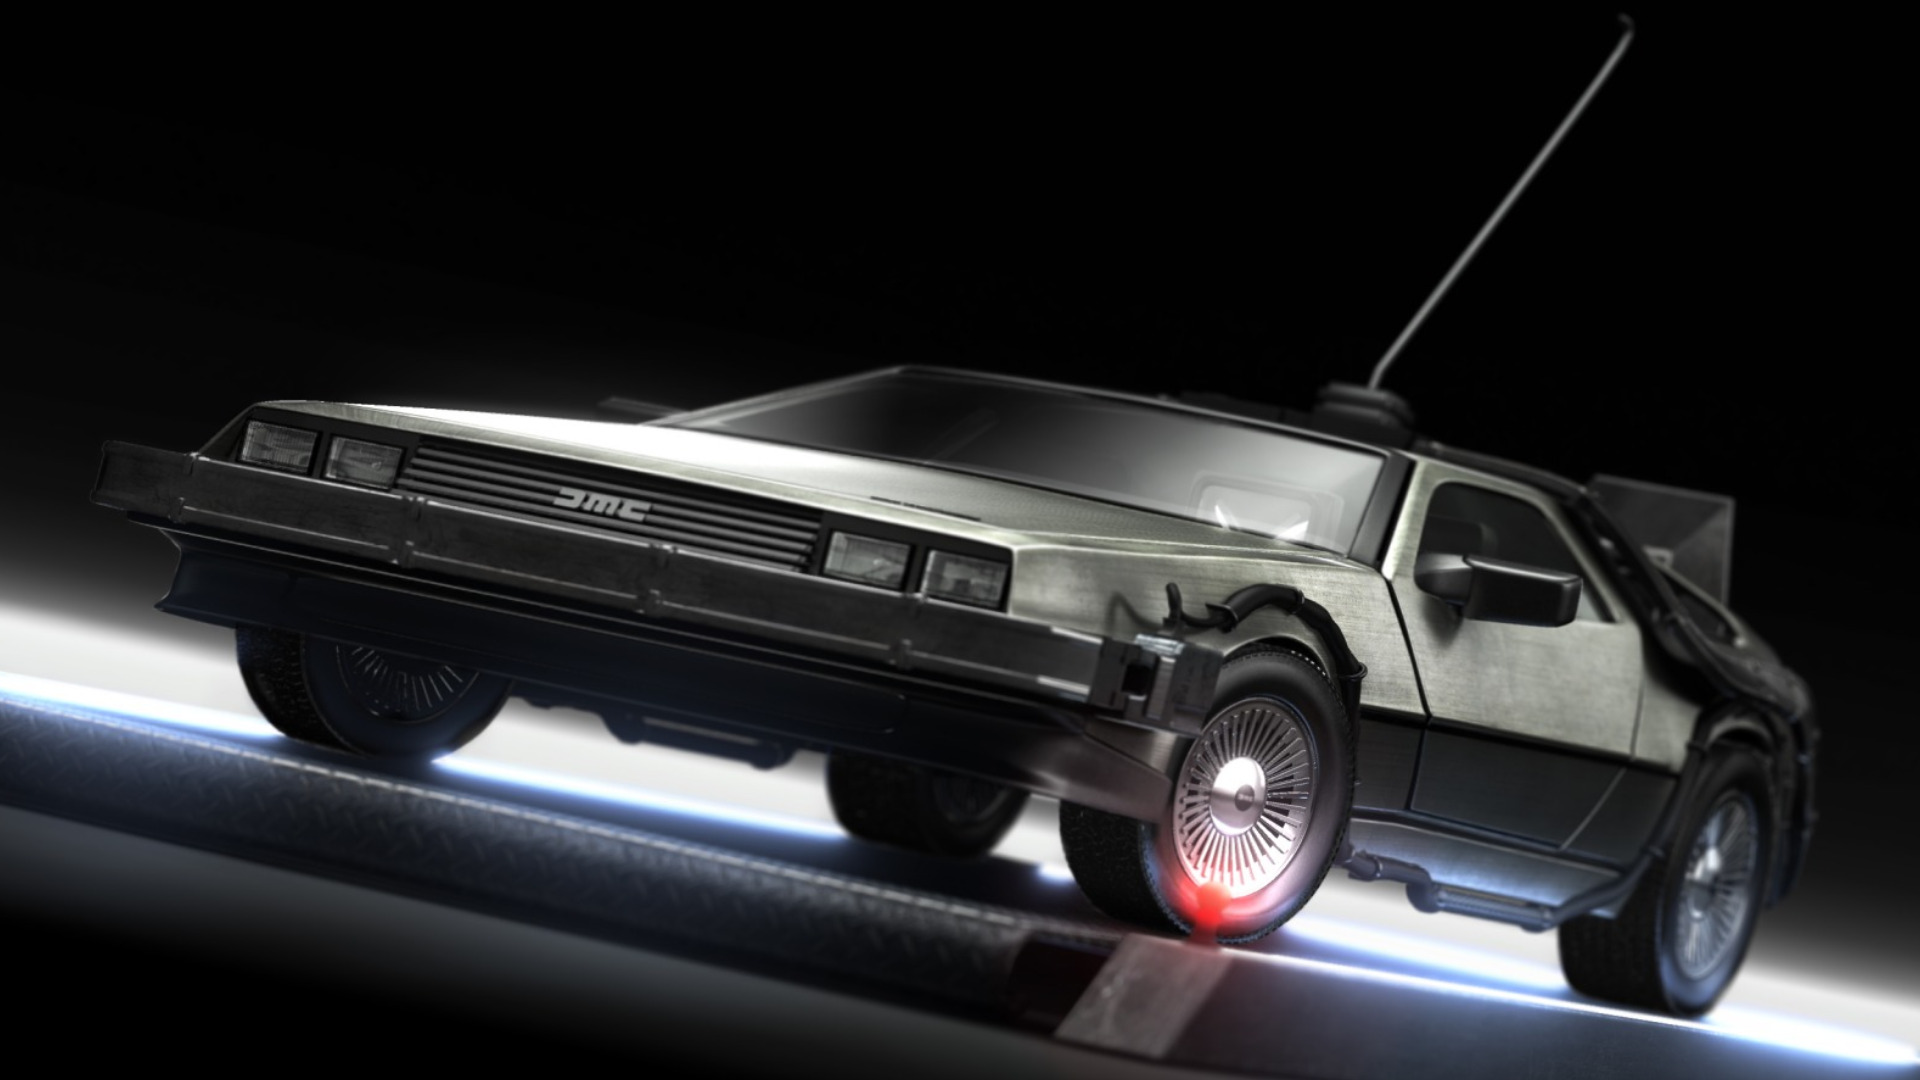 delorean wallpaper download - photo #4